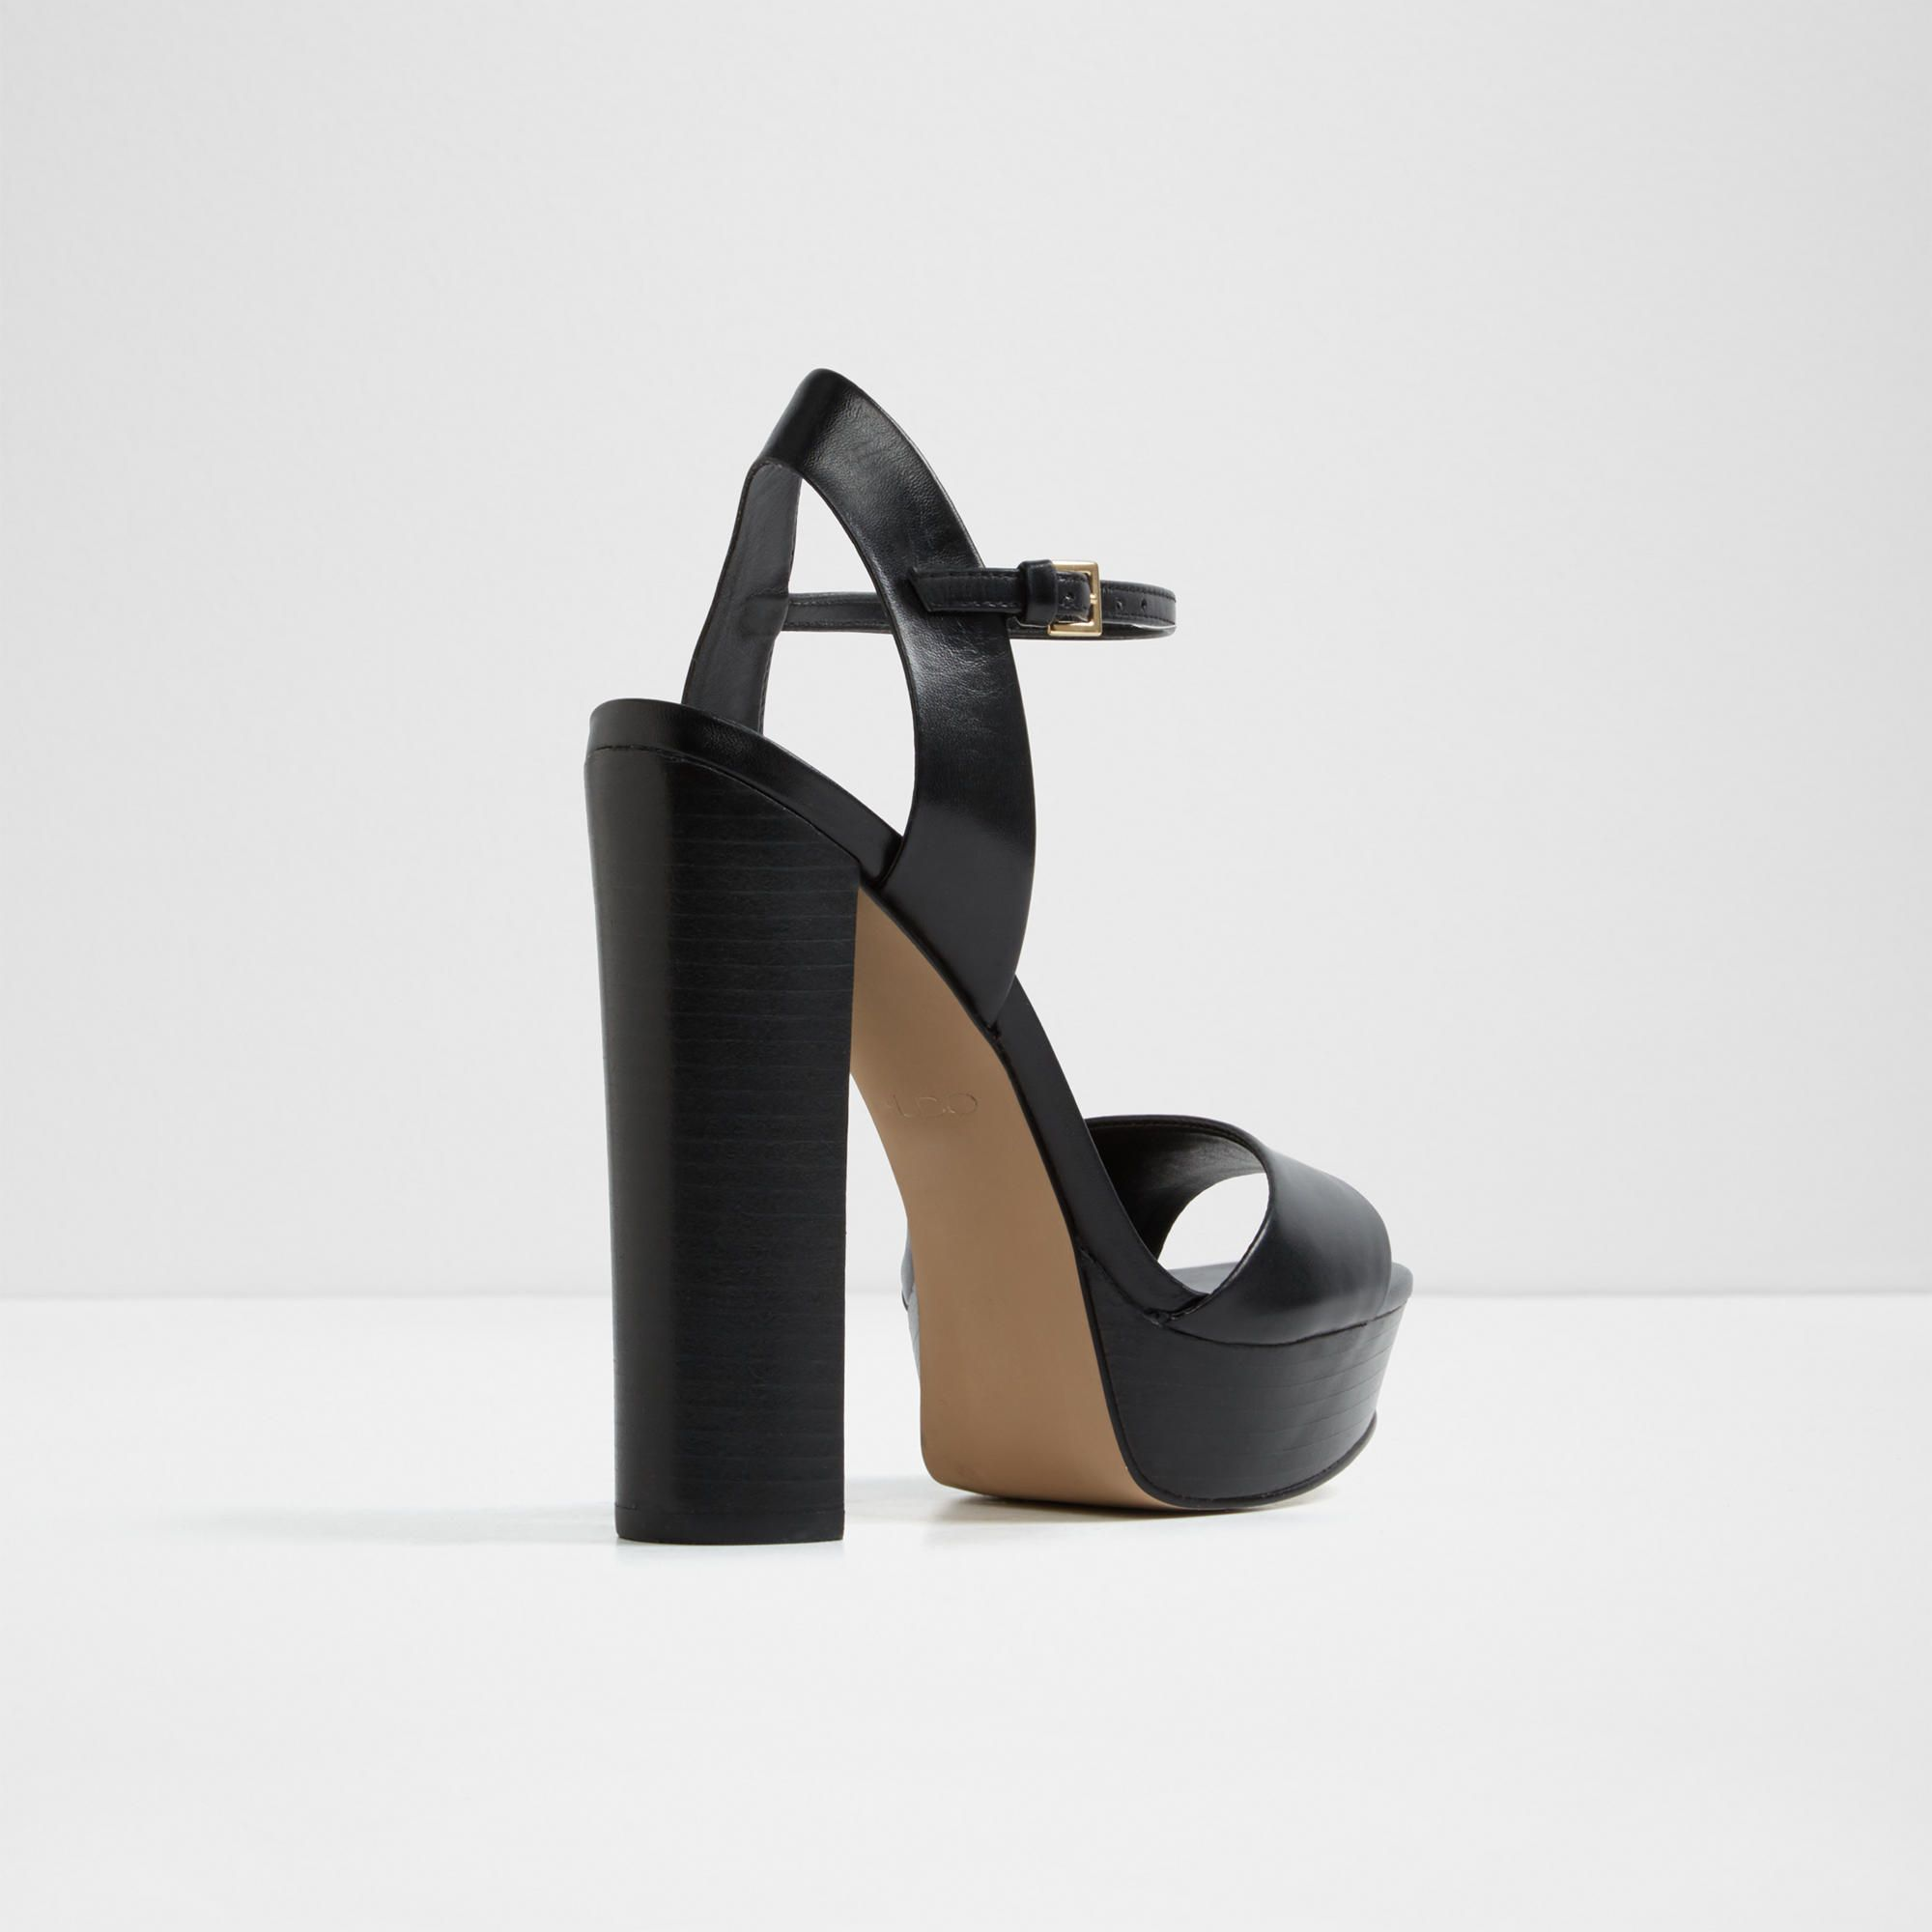 Talluto Black Women's Heels | ALDO Europe